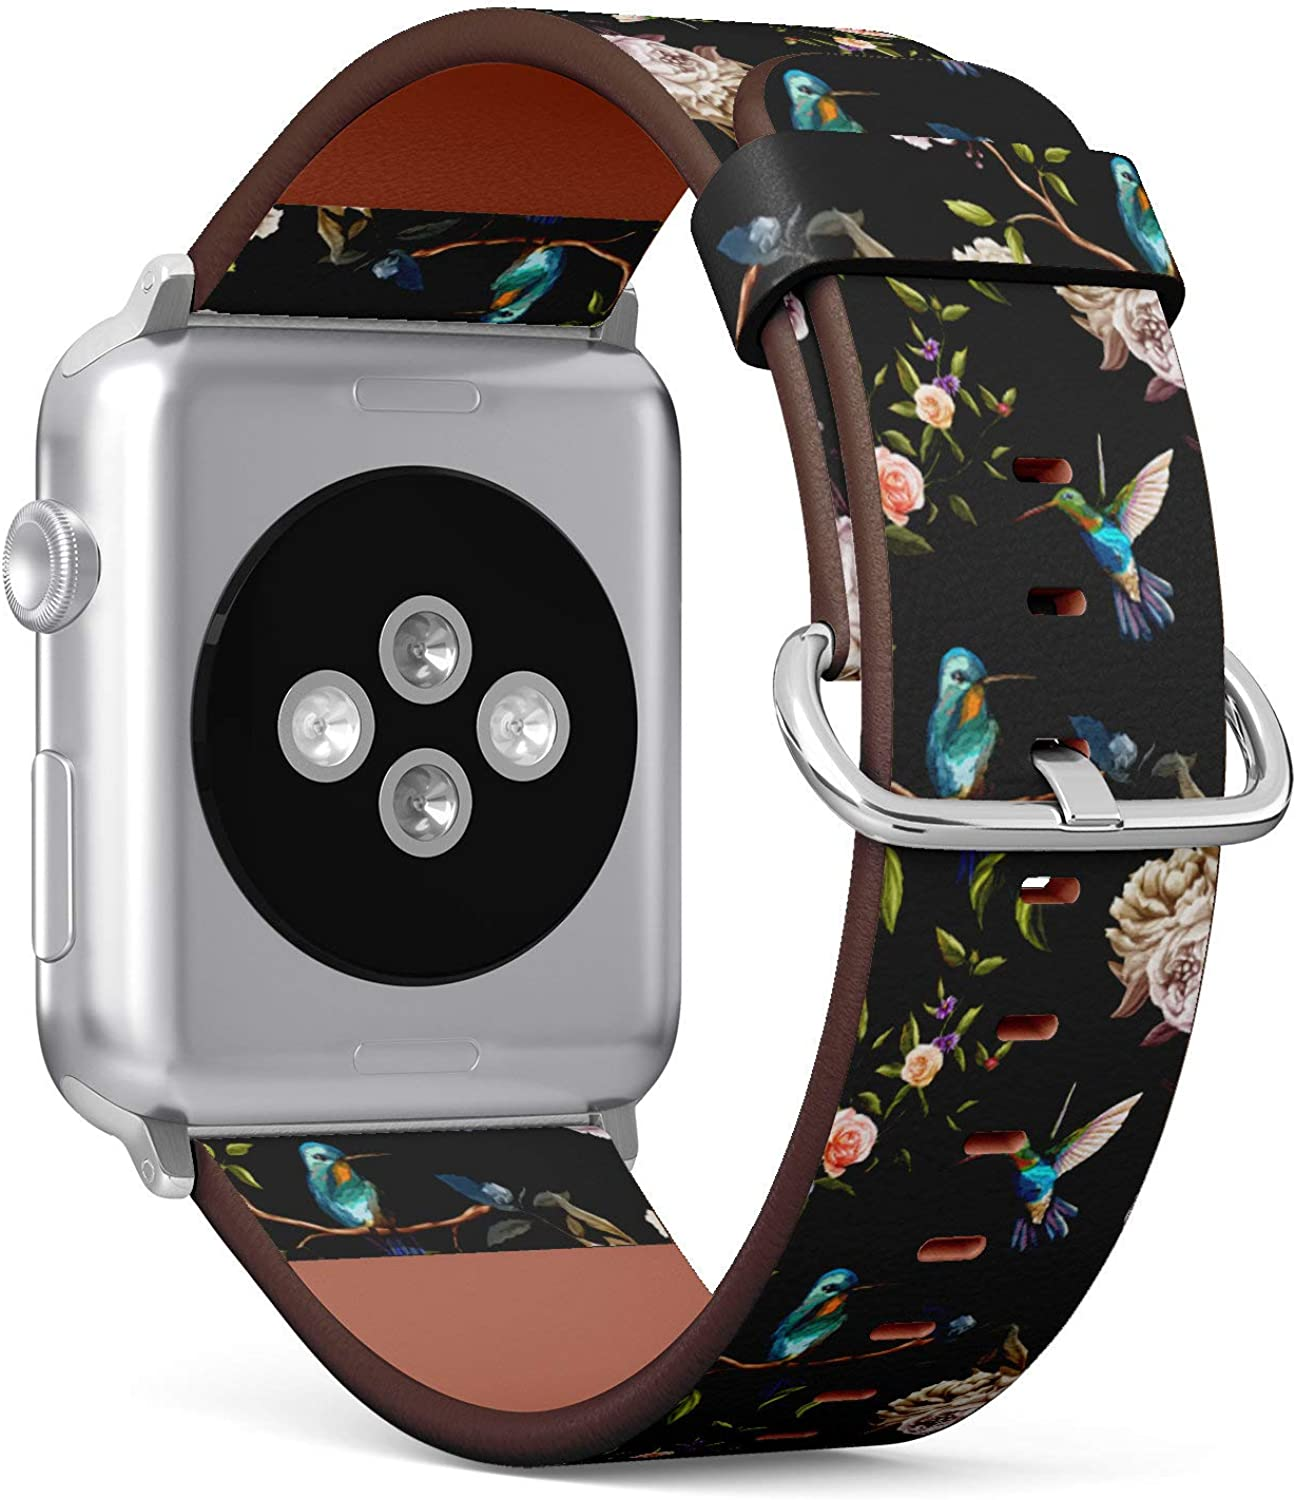 (Hummingbird Floral Pattern) Patterned Leather Wristband Strap for Apple Watch Series 4/3/2/1 gen,Replacement for iWatch 38mm / 40mm Bands